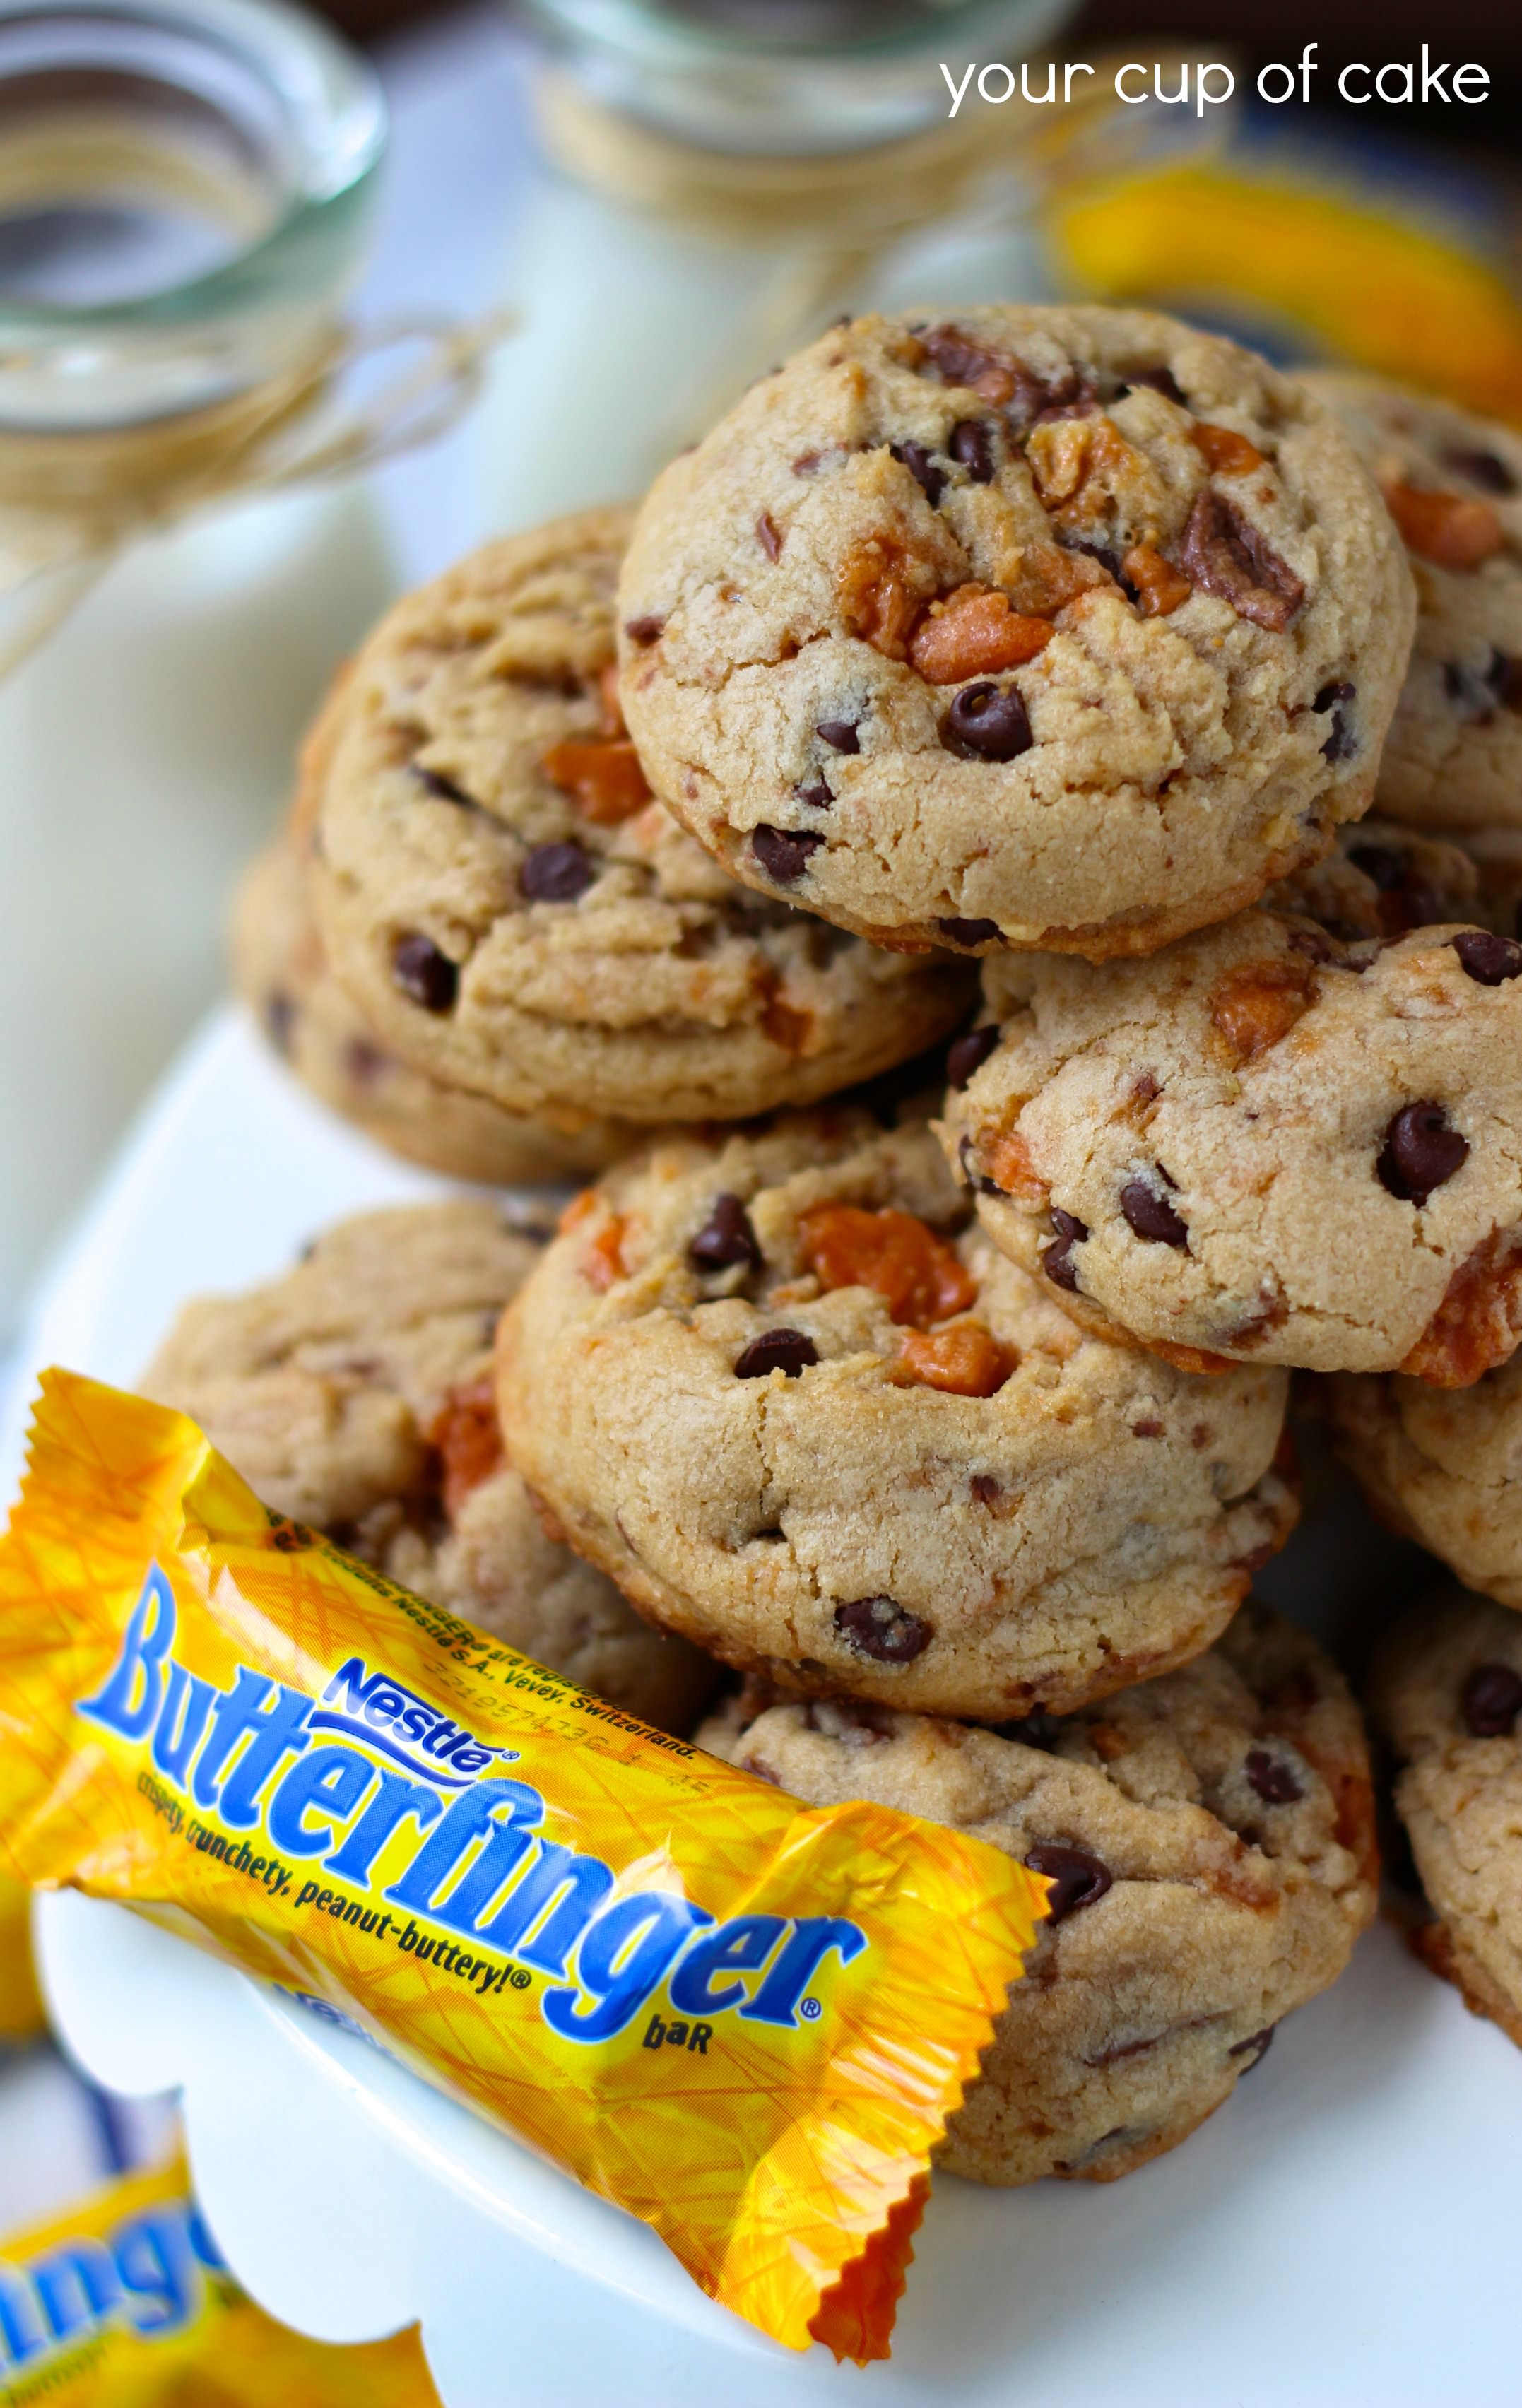 Butterfinger Cookies - Your Cup of Cake